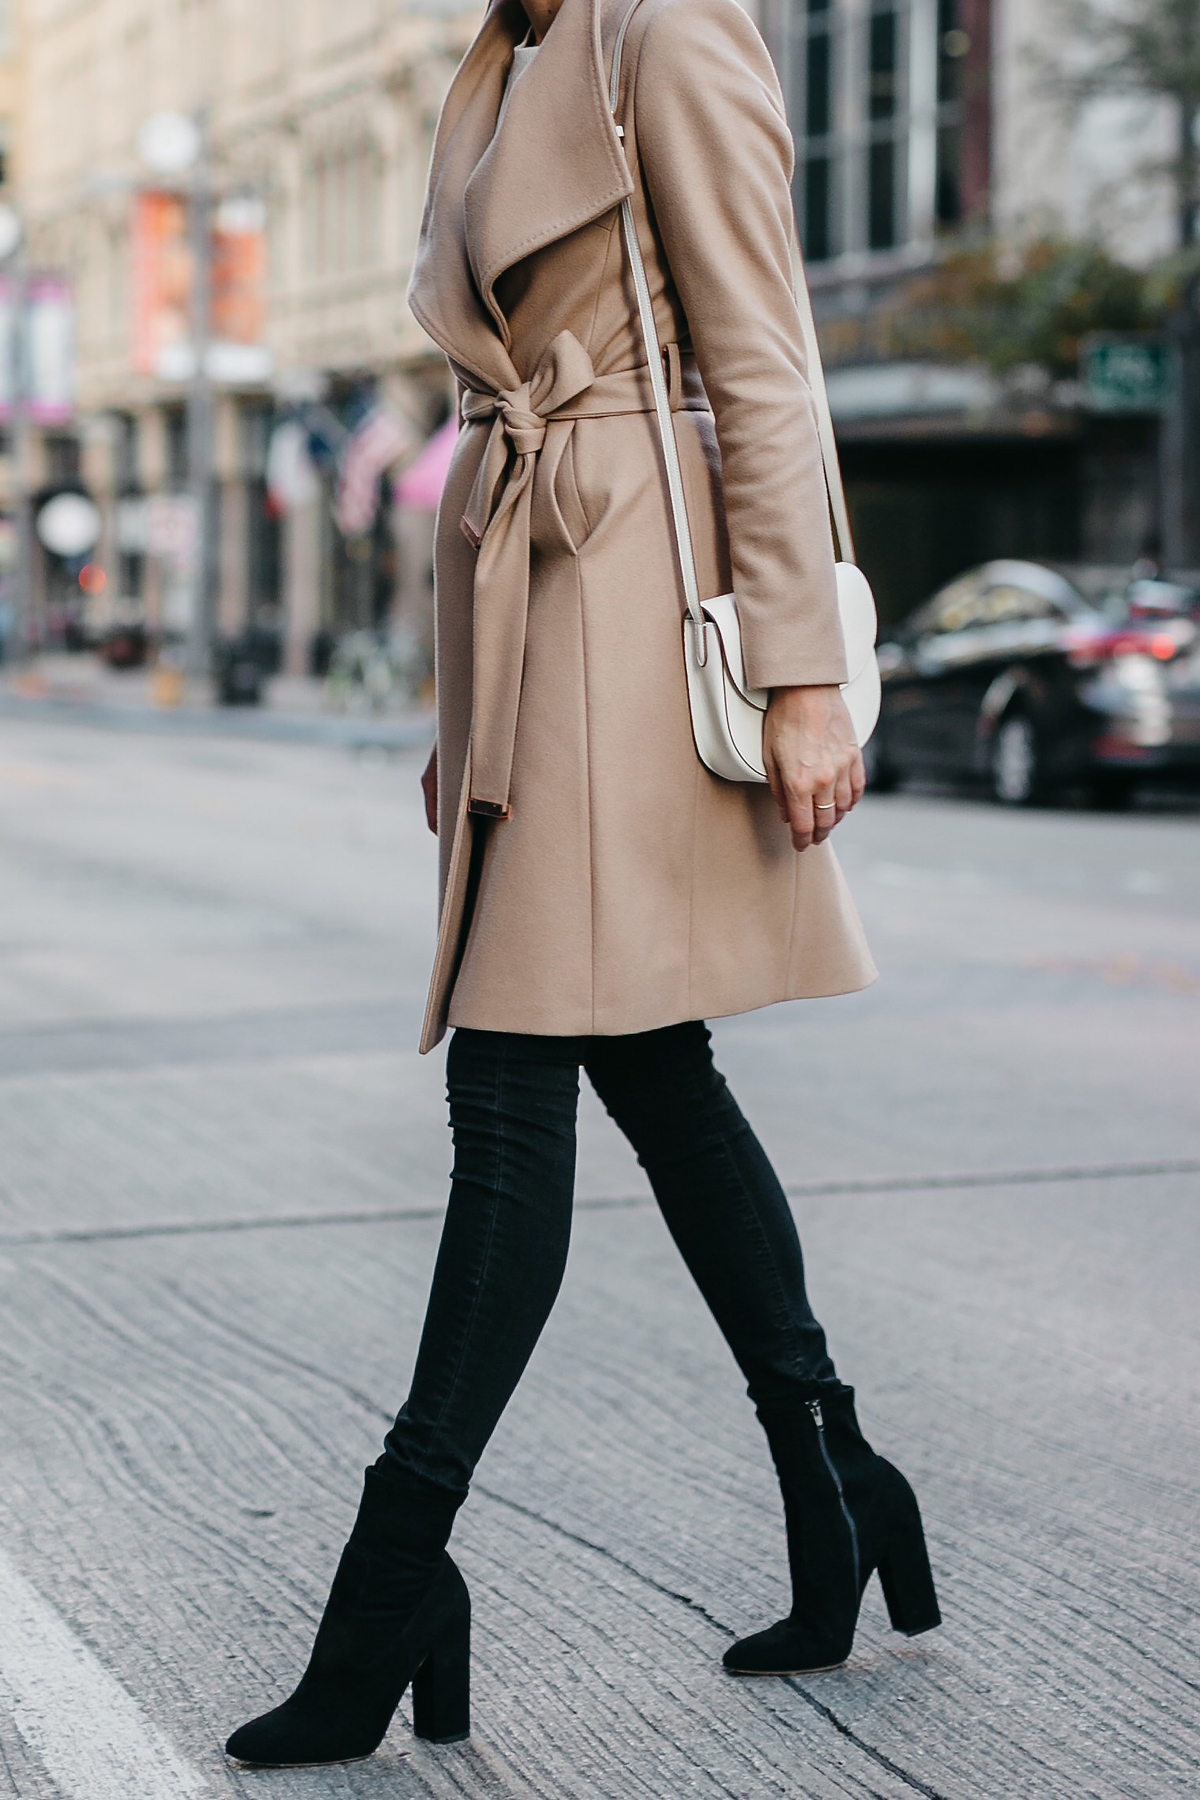 Tan Wrap Coat Black Skinny Jeans Black Booties Fashion Jackson Dallas Blogger Fashion Blogger Street Style